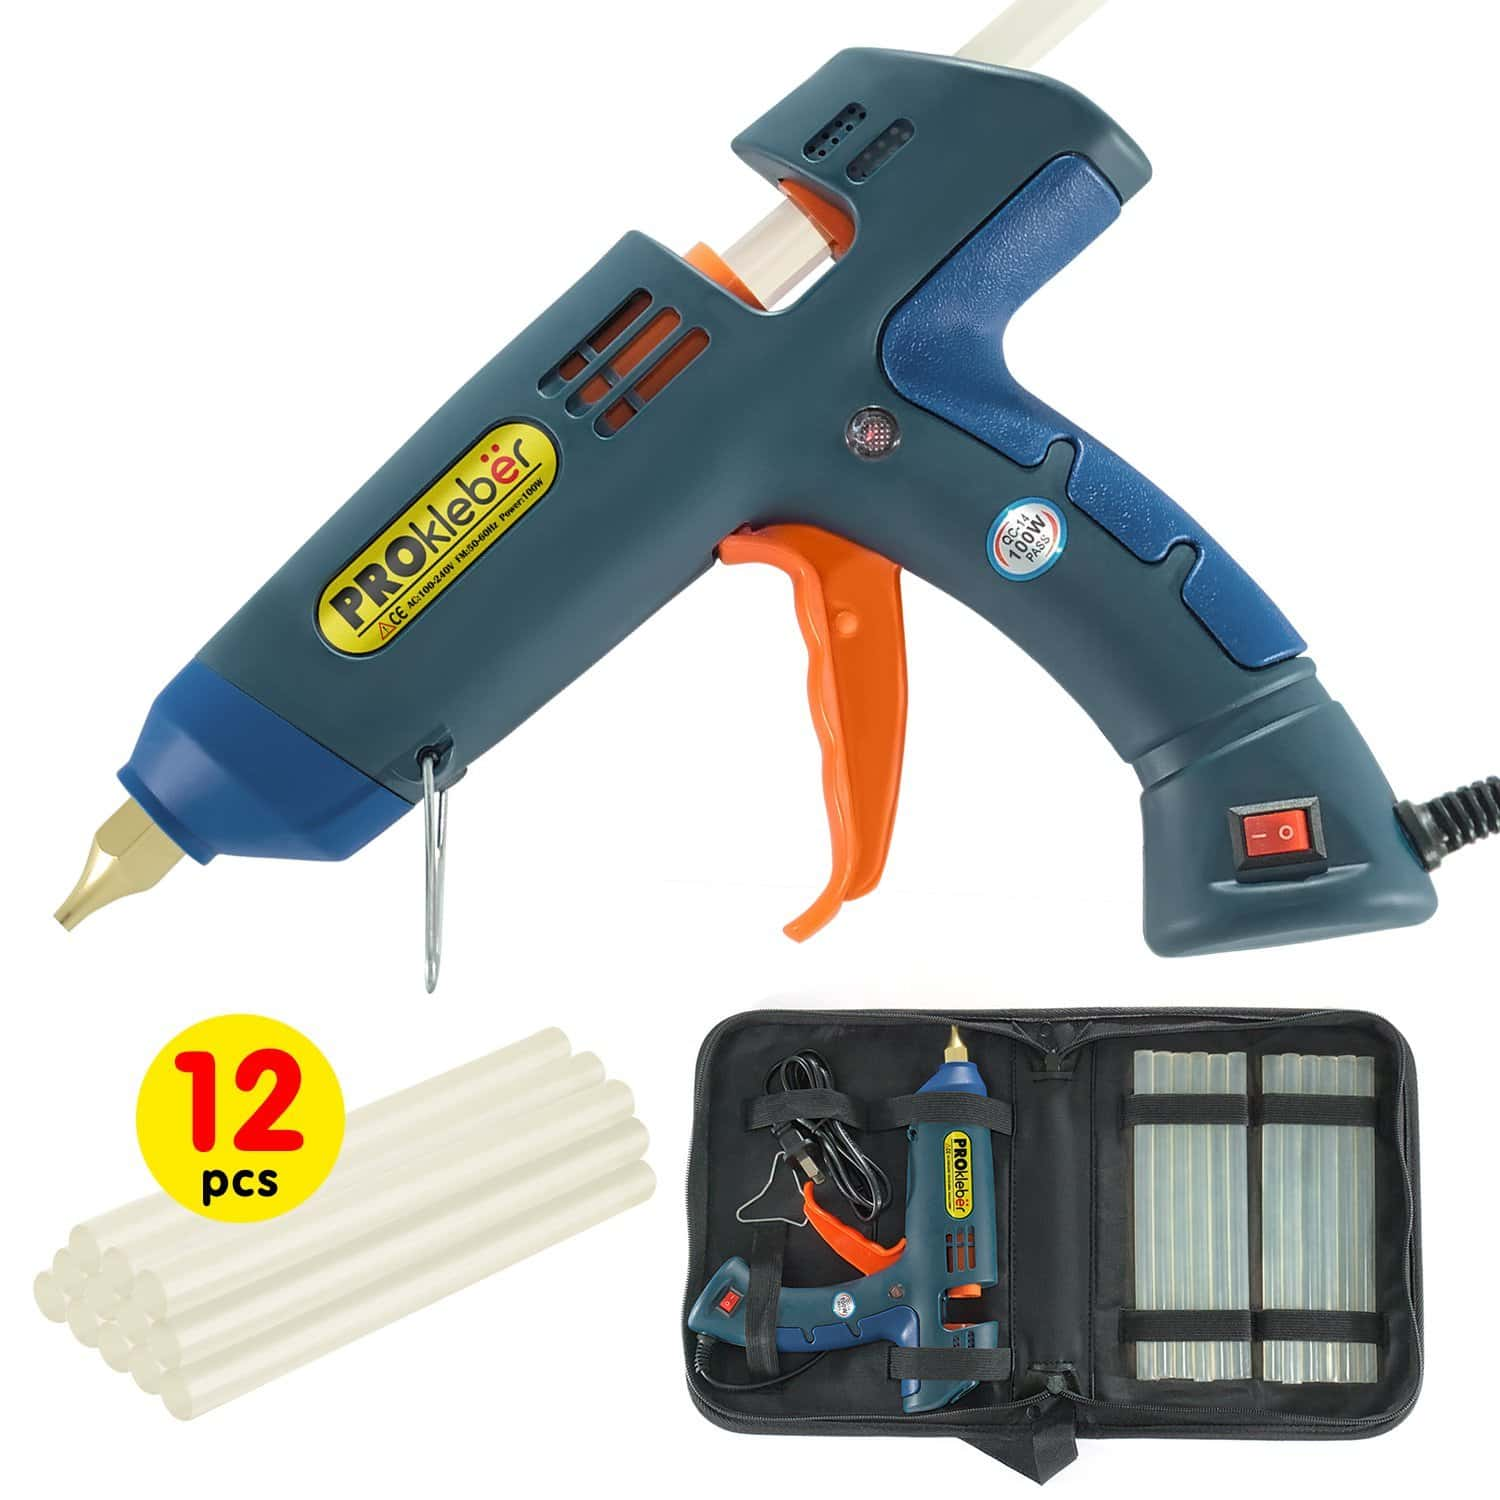 Hot Melt Glue Gun Kit 100 Watt with Carry Bag and 12 pcs Glue Sticks